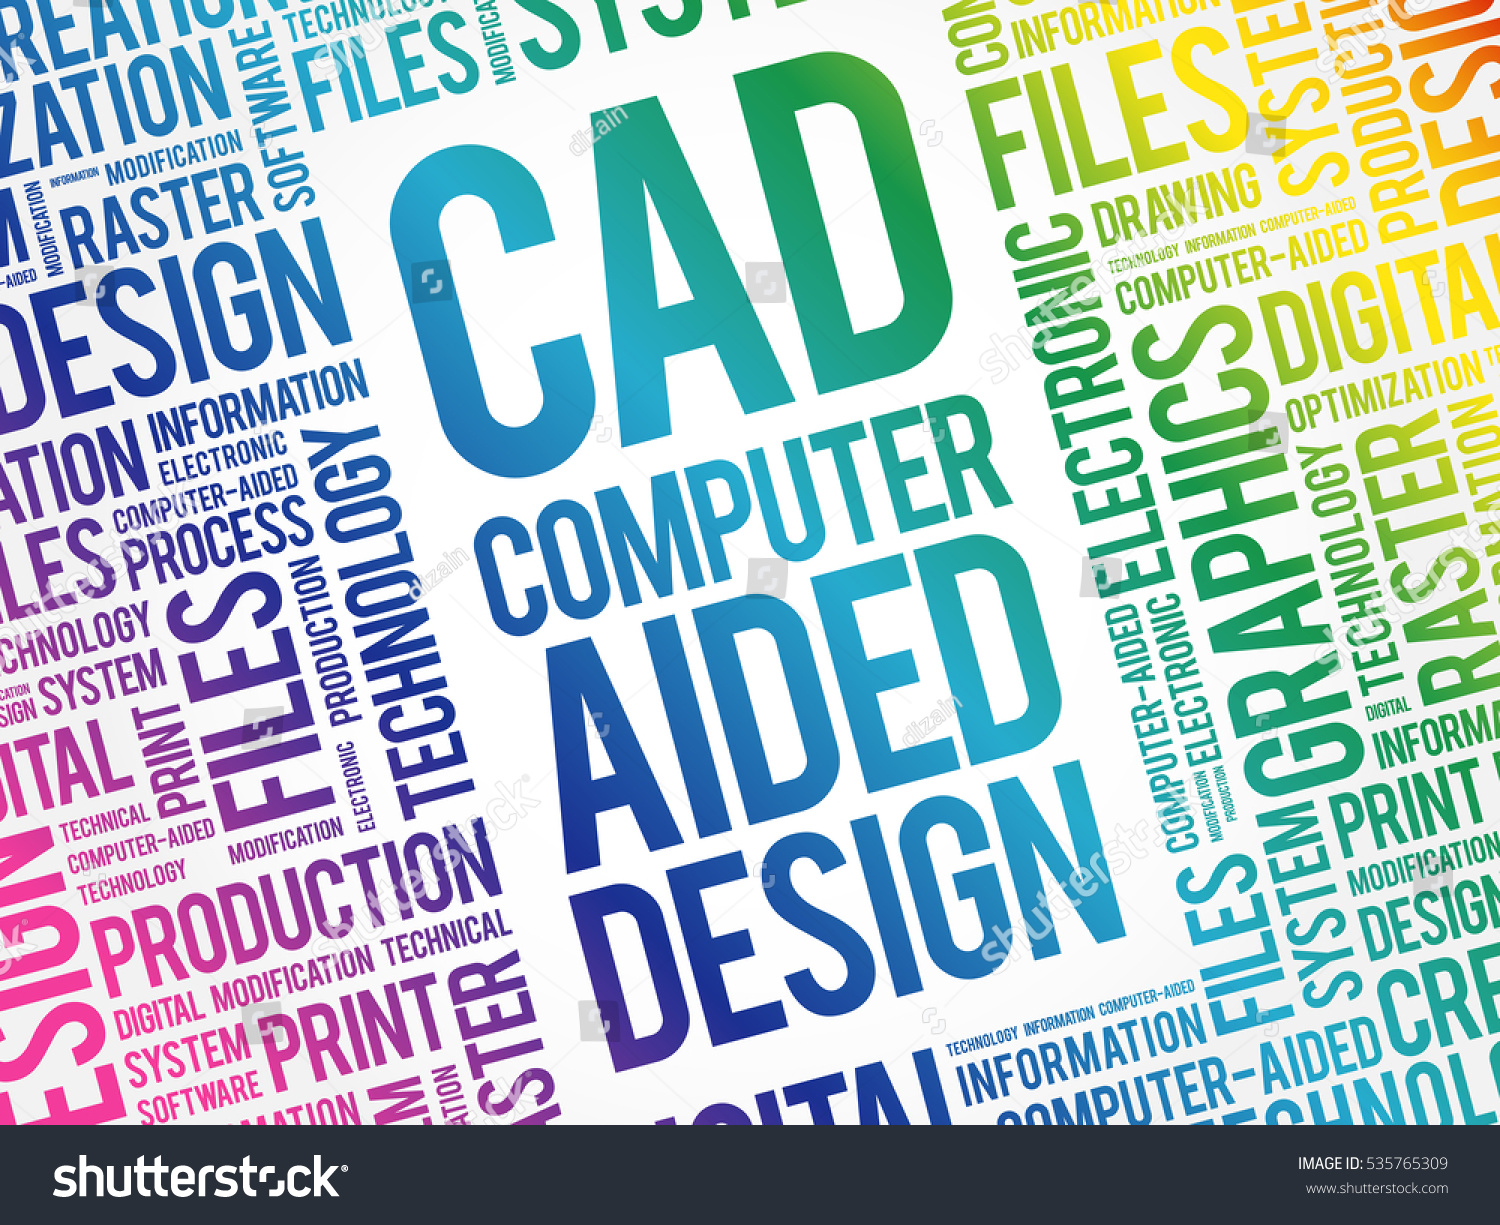 Free computer aided design software download